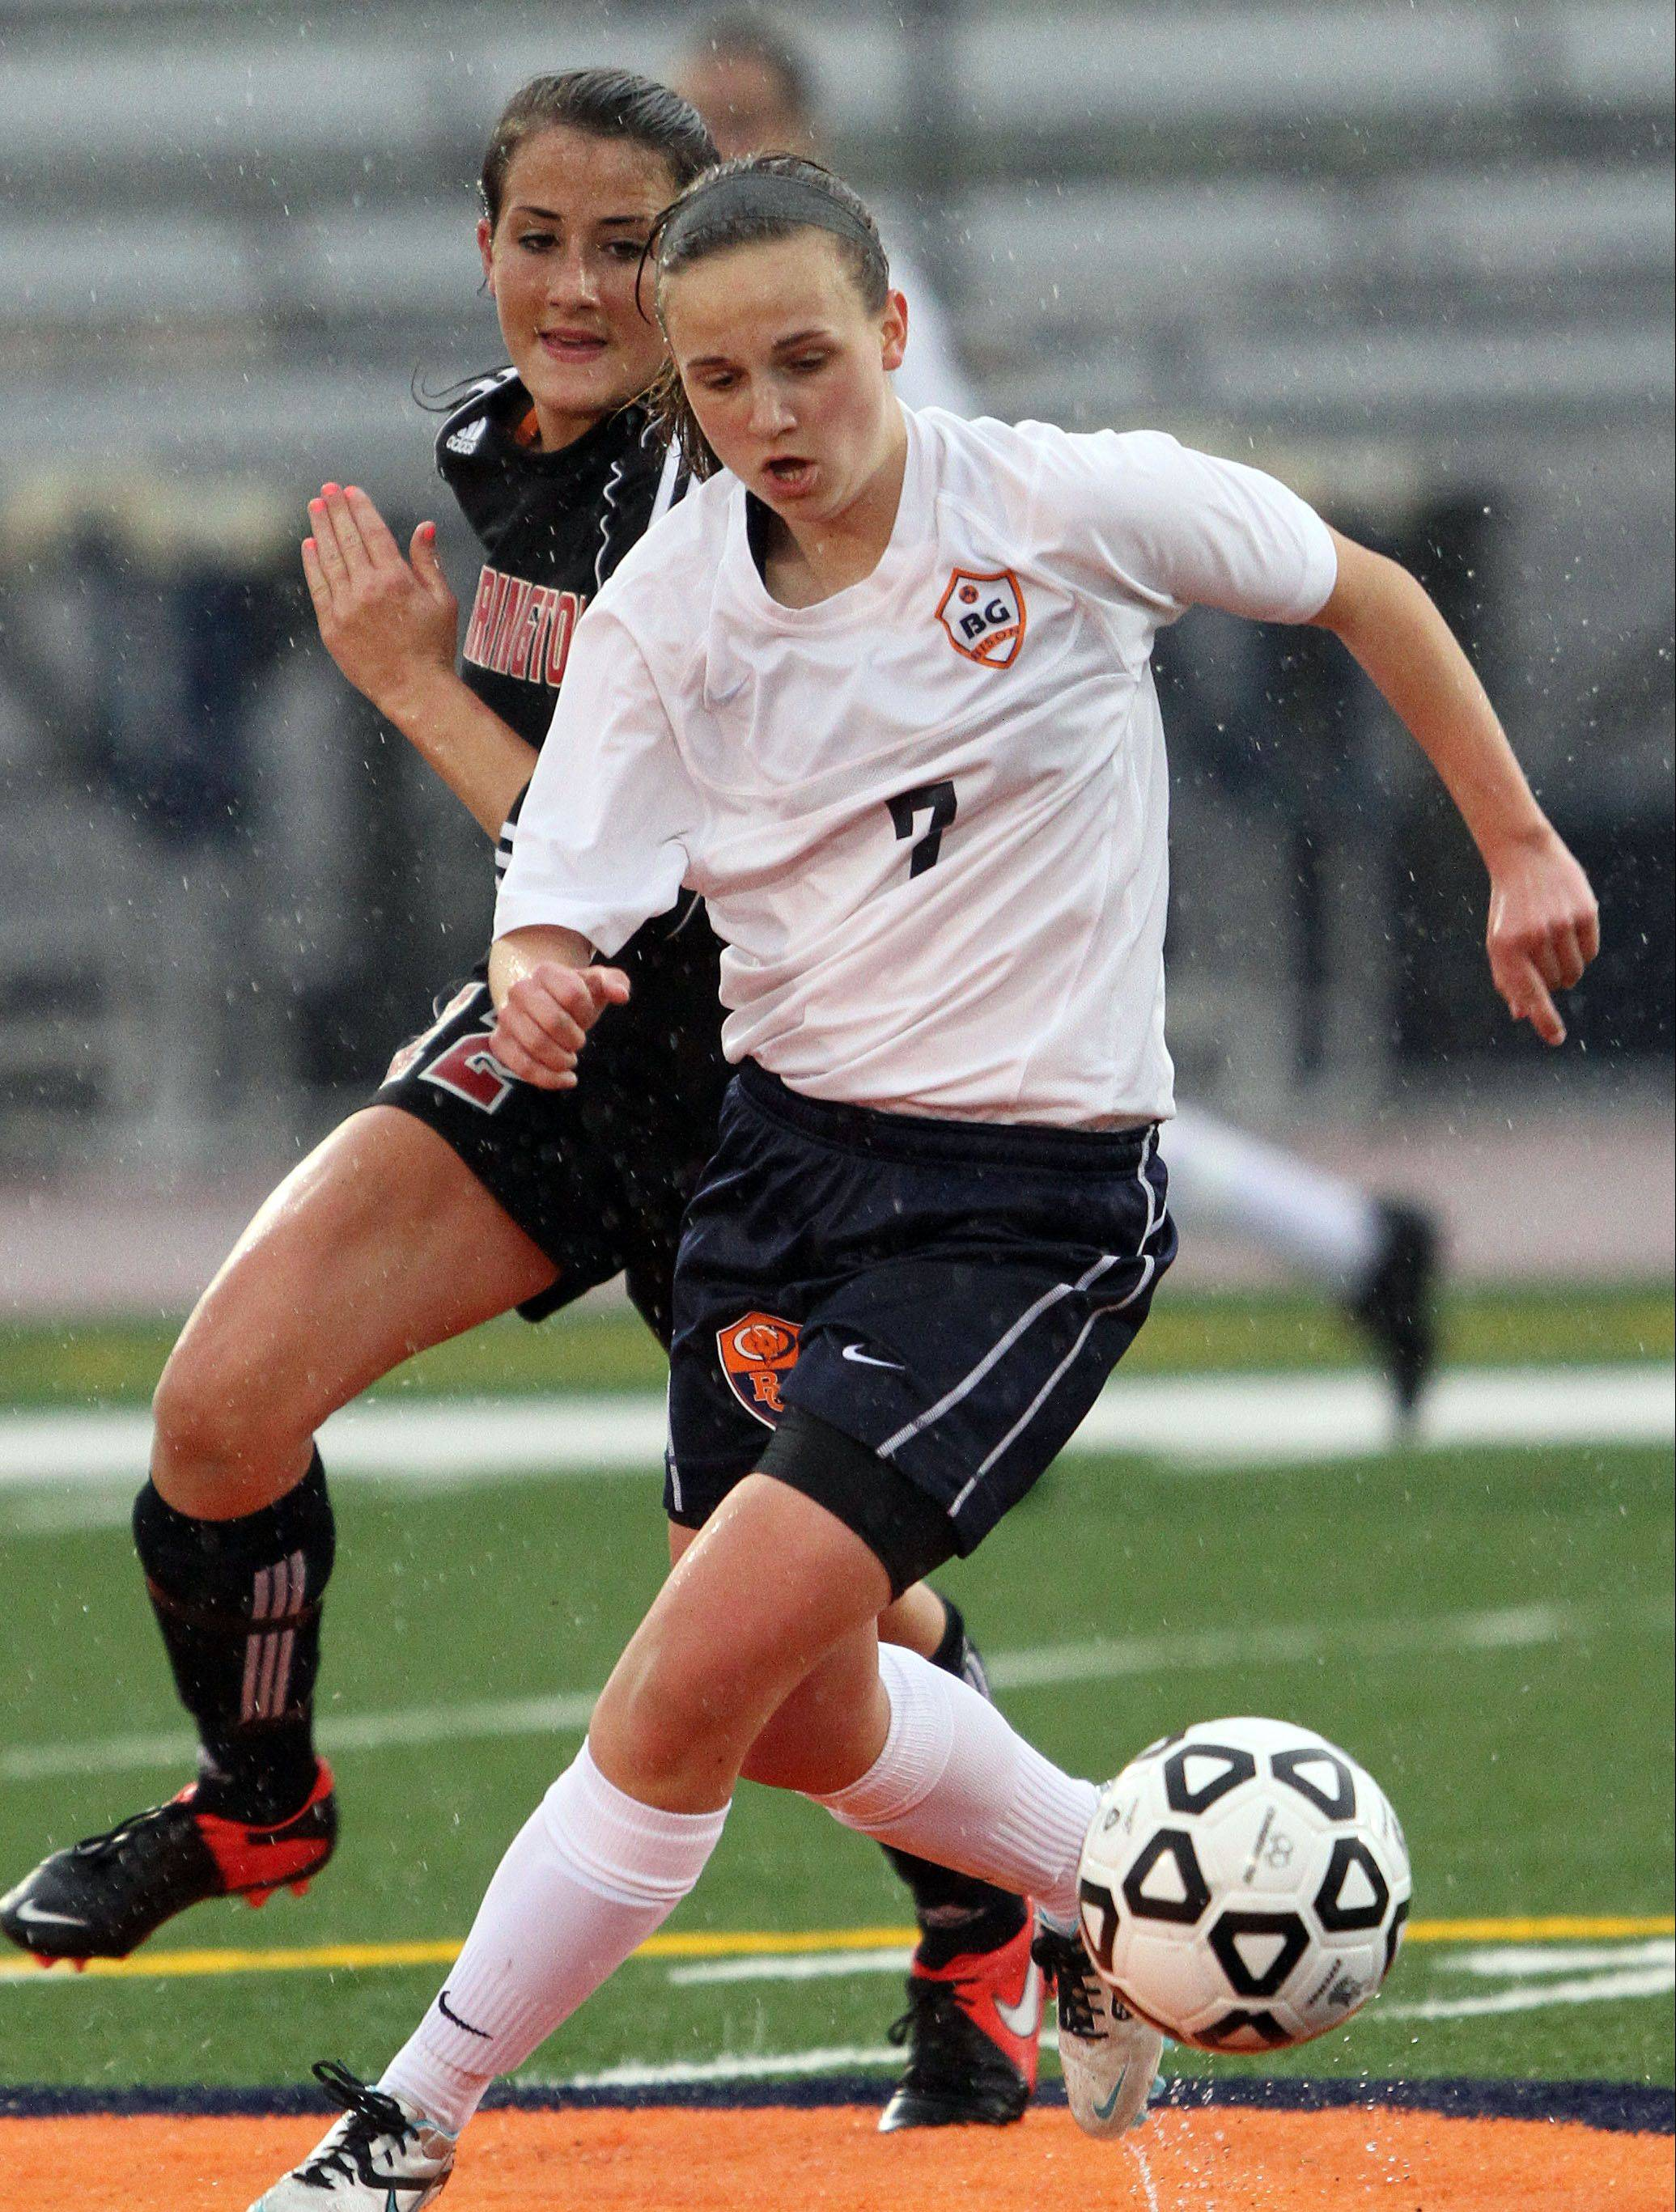 Buffalo Grove's Jessica Kovach, right, drives past Barrington's Megan Fox during Monday night at Buffalo Grove.